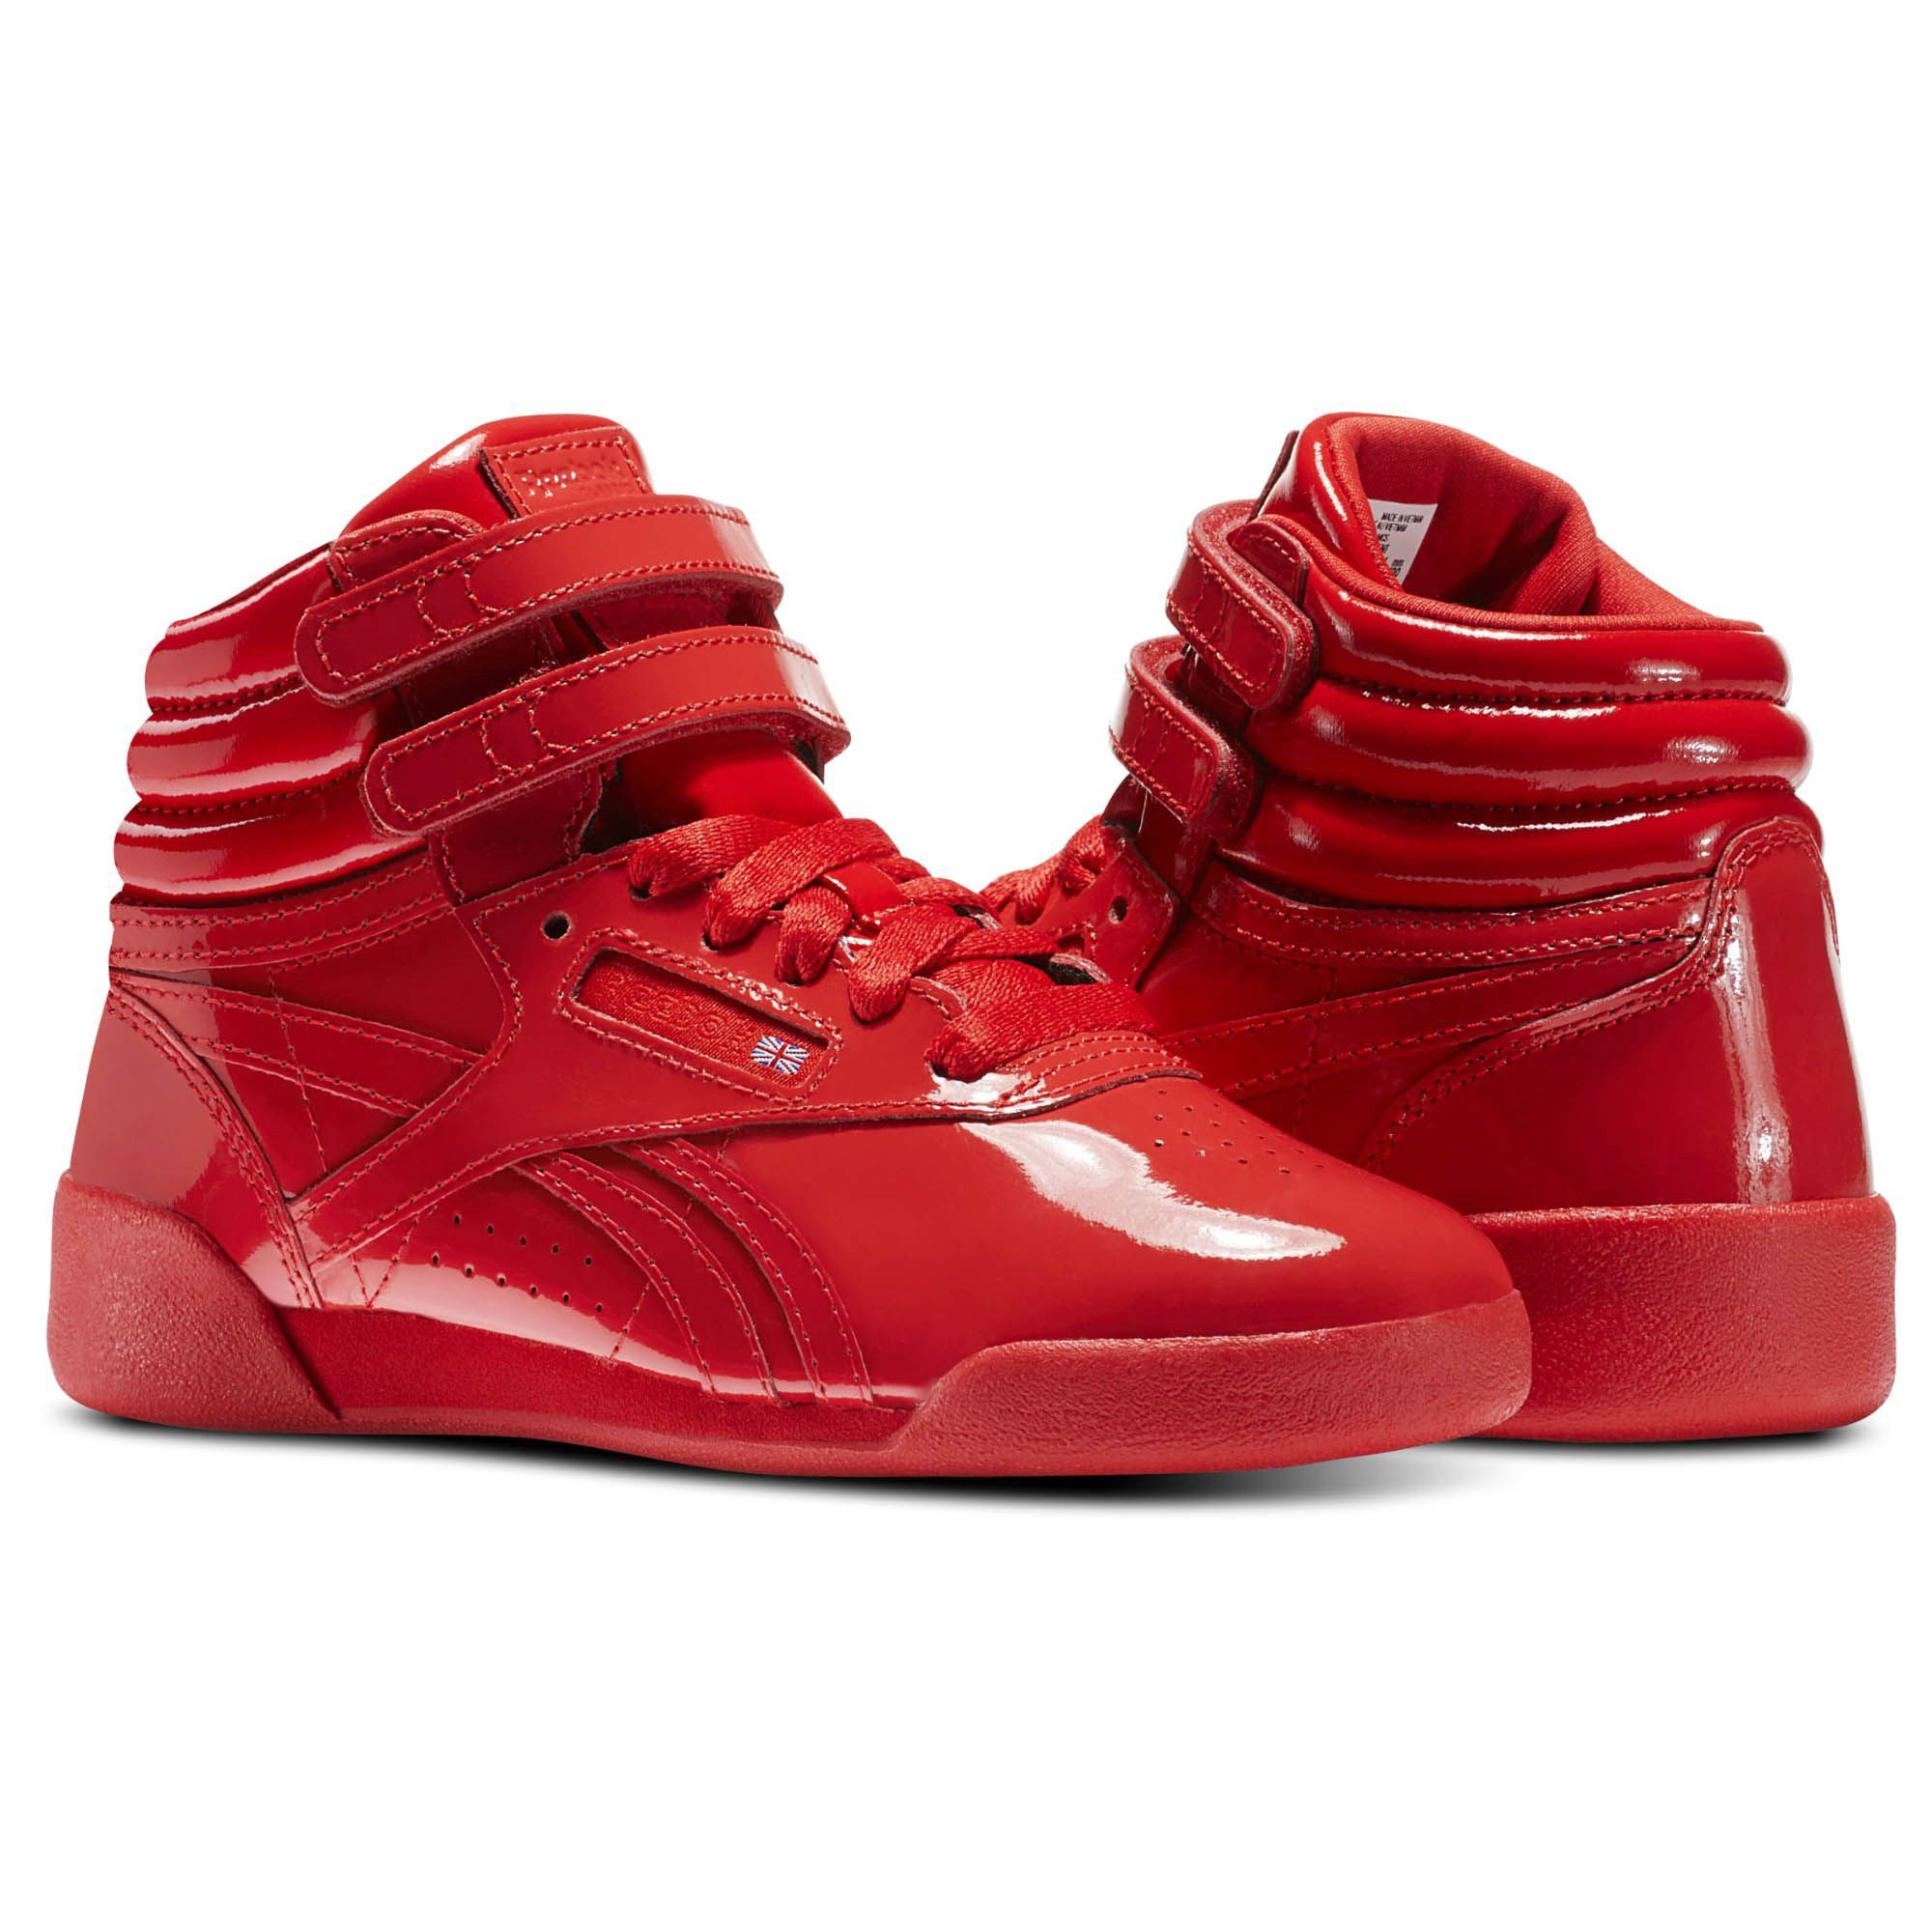 49213a65bf07 Reebok Freestyle Hi Patent Leather - Pre-School Red 3